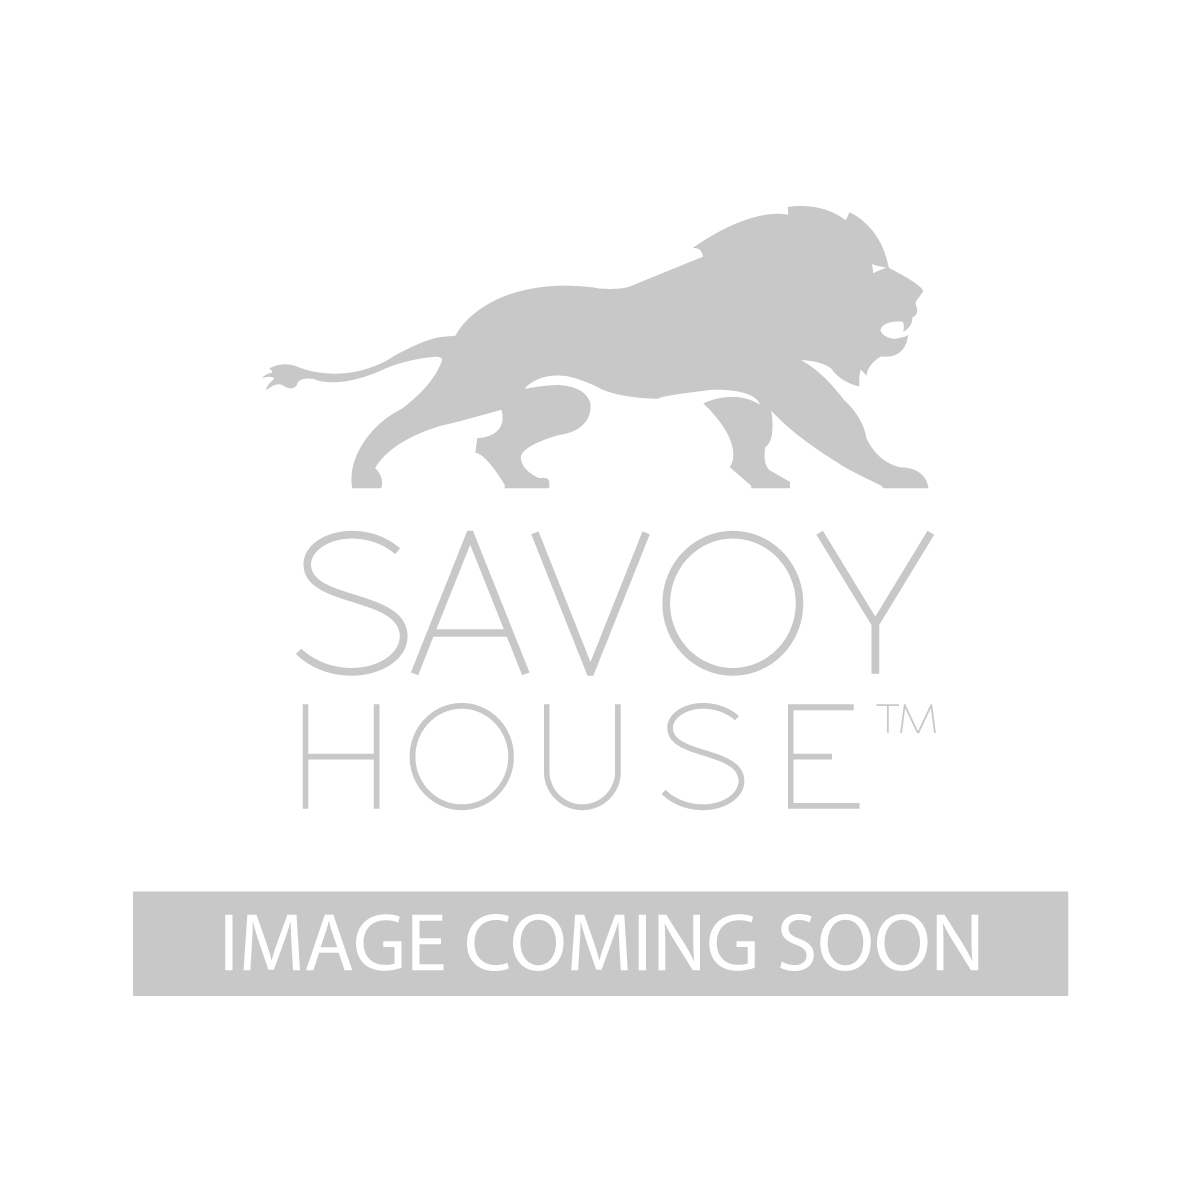 52 eup 5rv sn first value ceiling fan by savoy house first value ceiling fan aloadofball Gallery